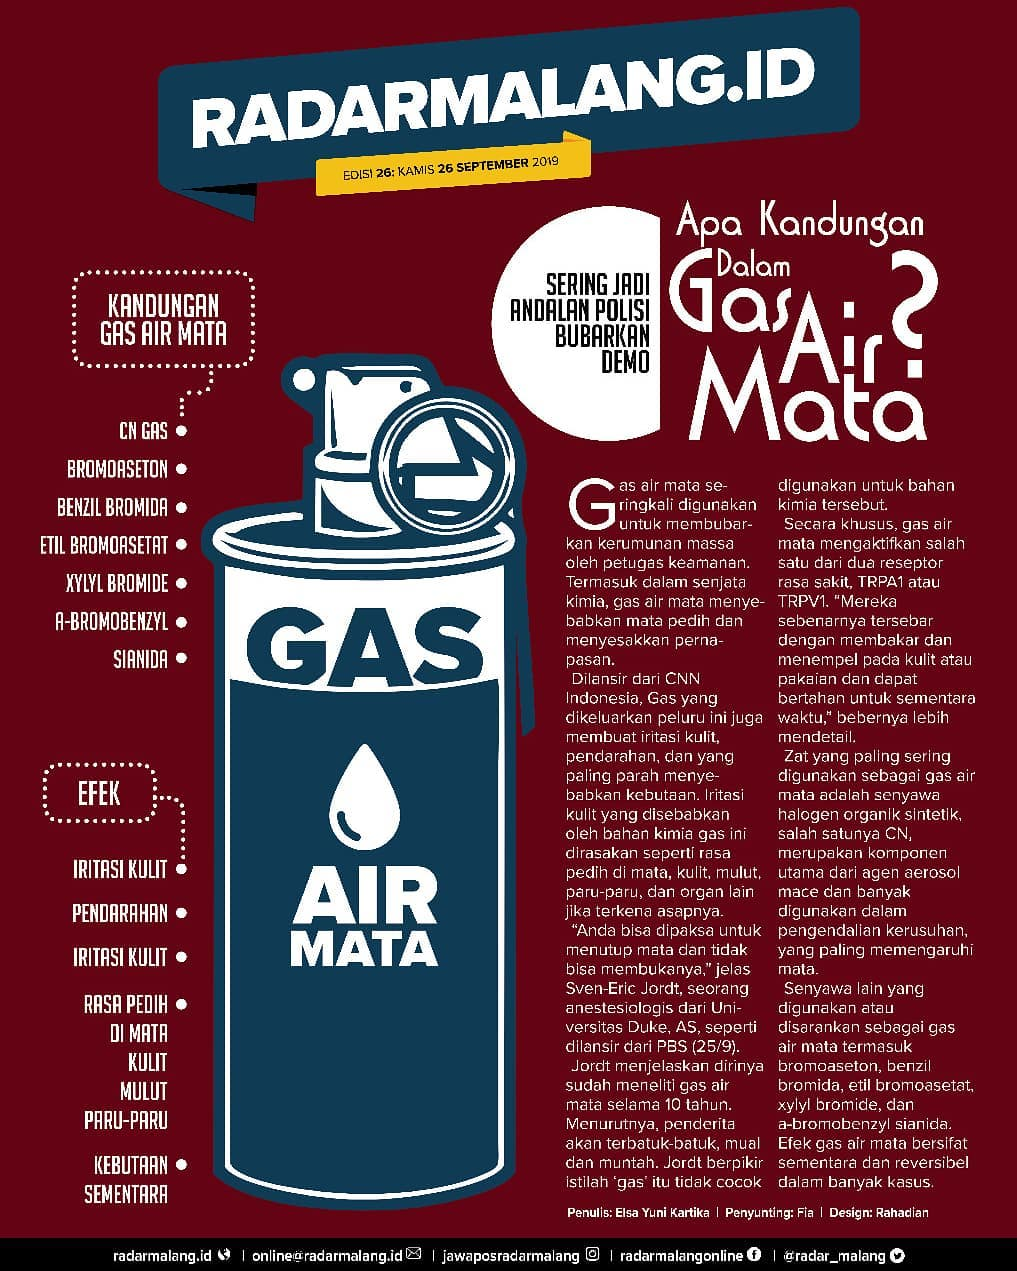 Kandungan Gas Air Mata